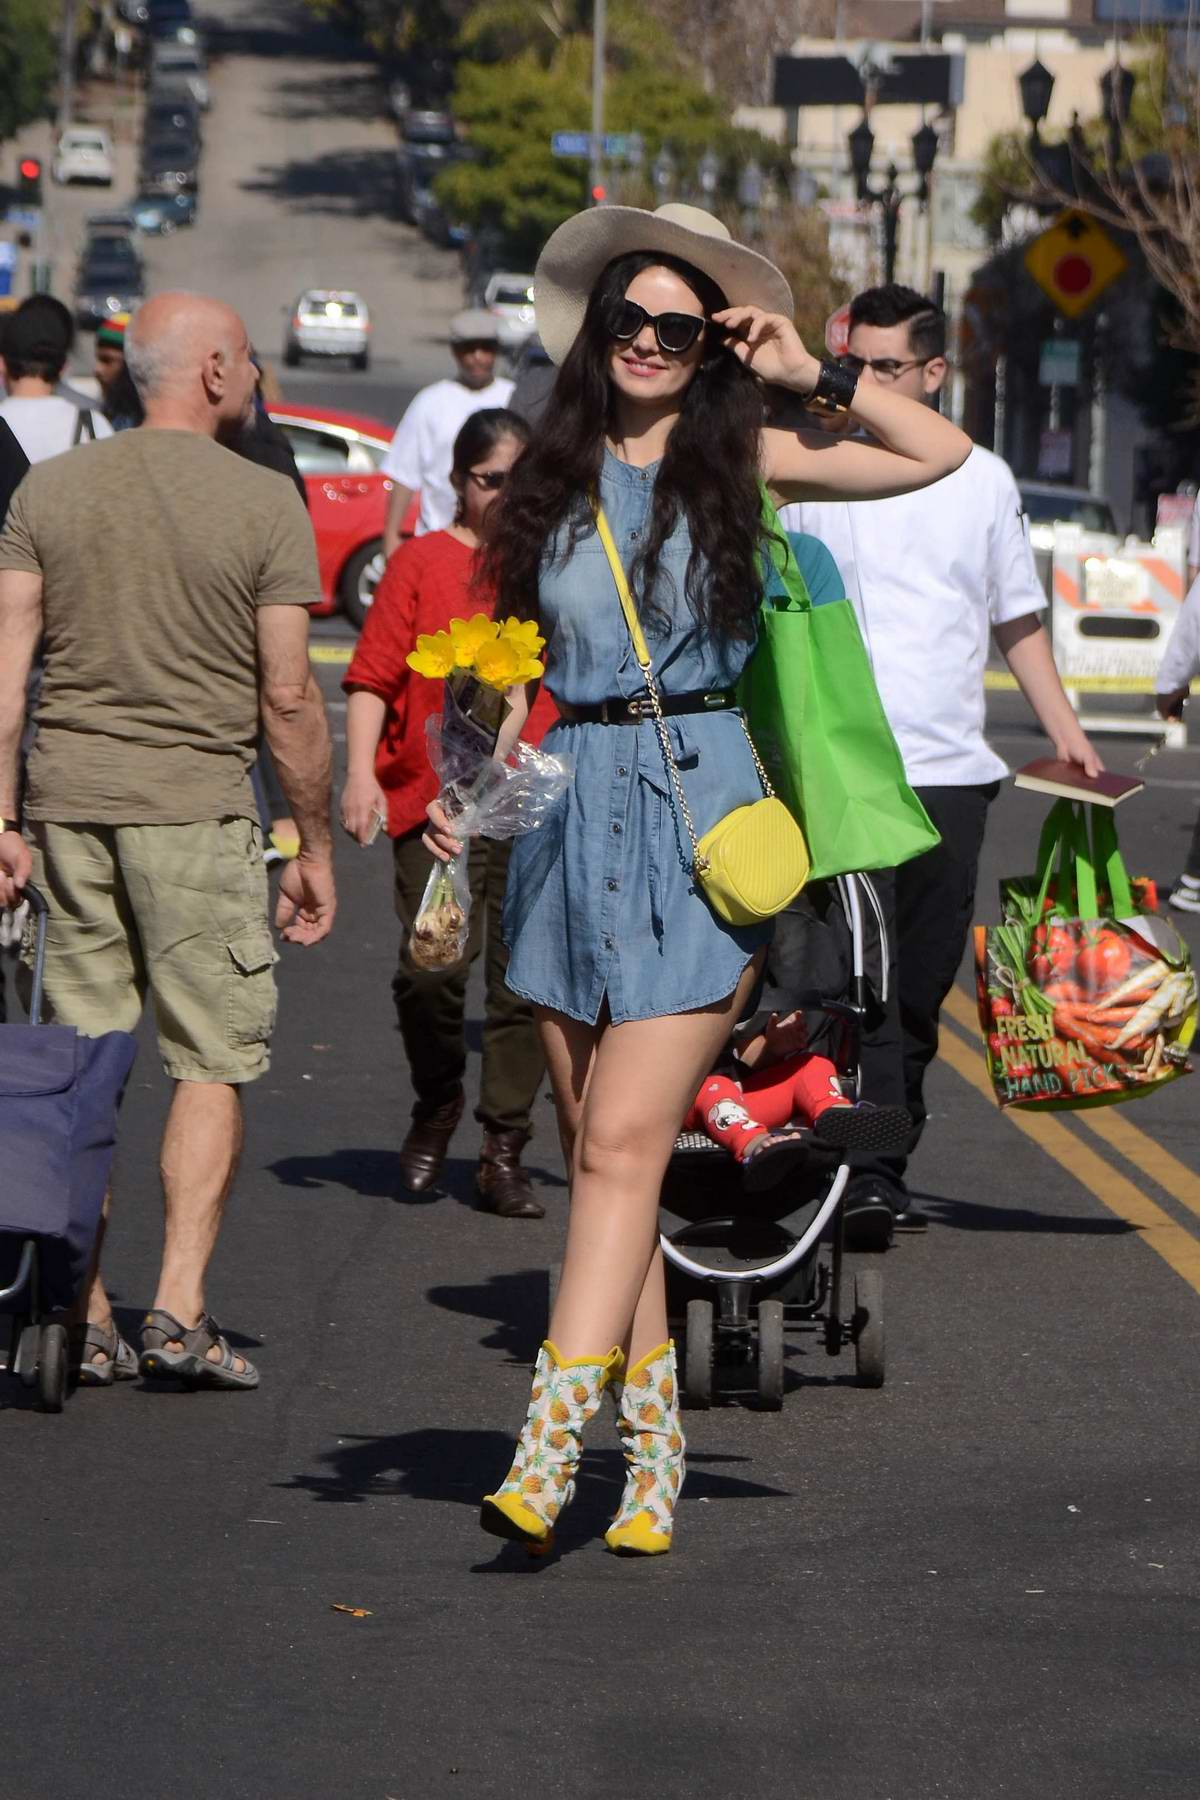 Natasha Blasick spotted in a short denim dress and a sunhat while shopping at the farmers market in Hollywood, Los Angeles